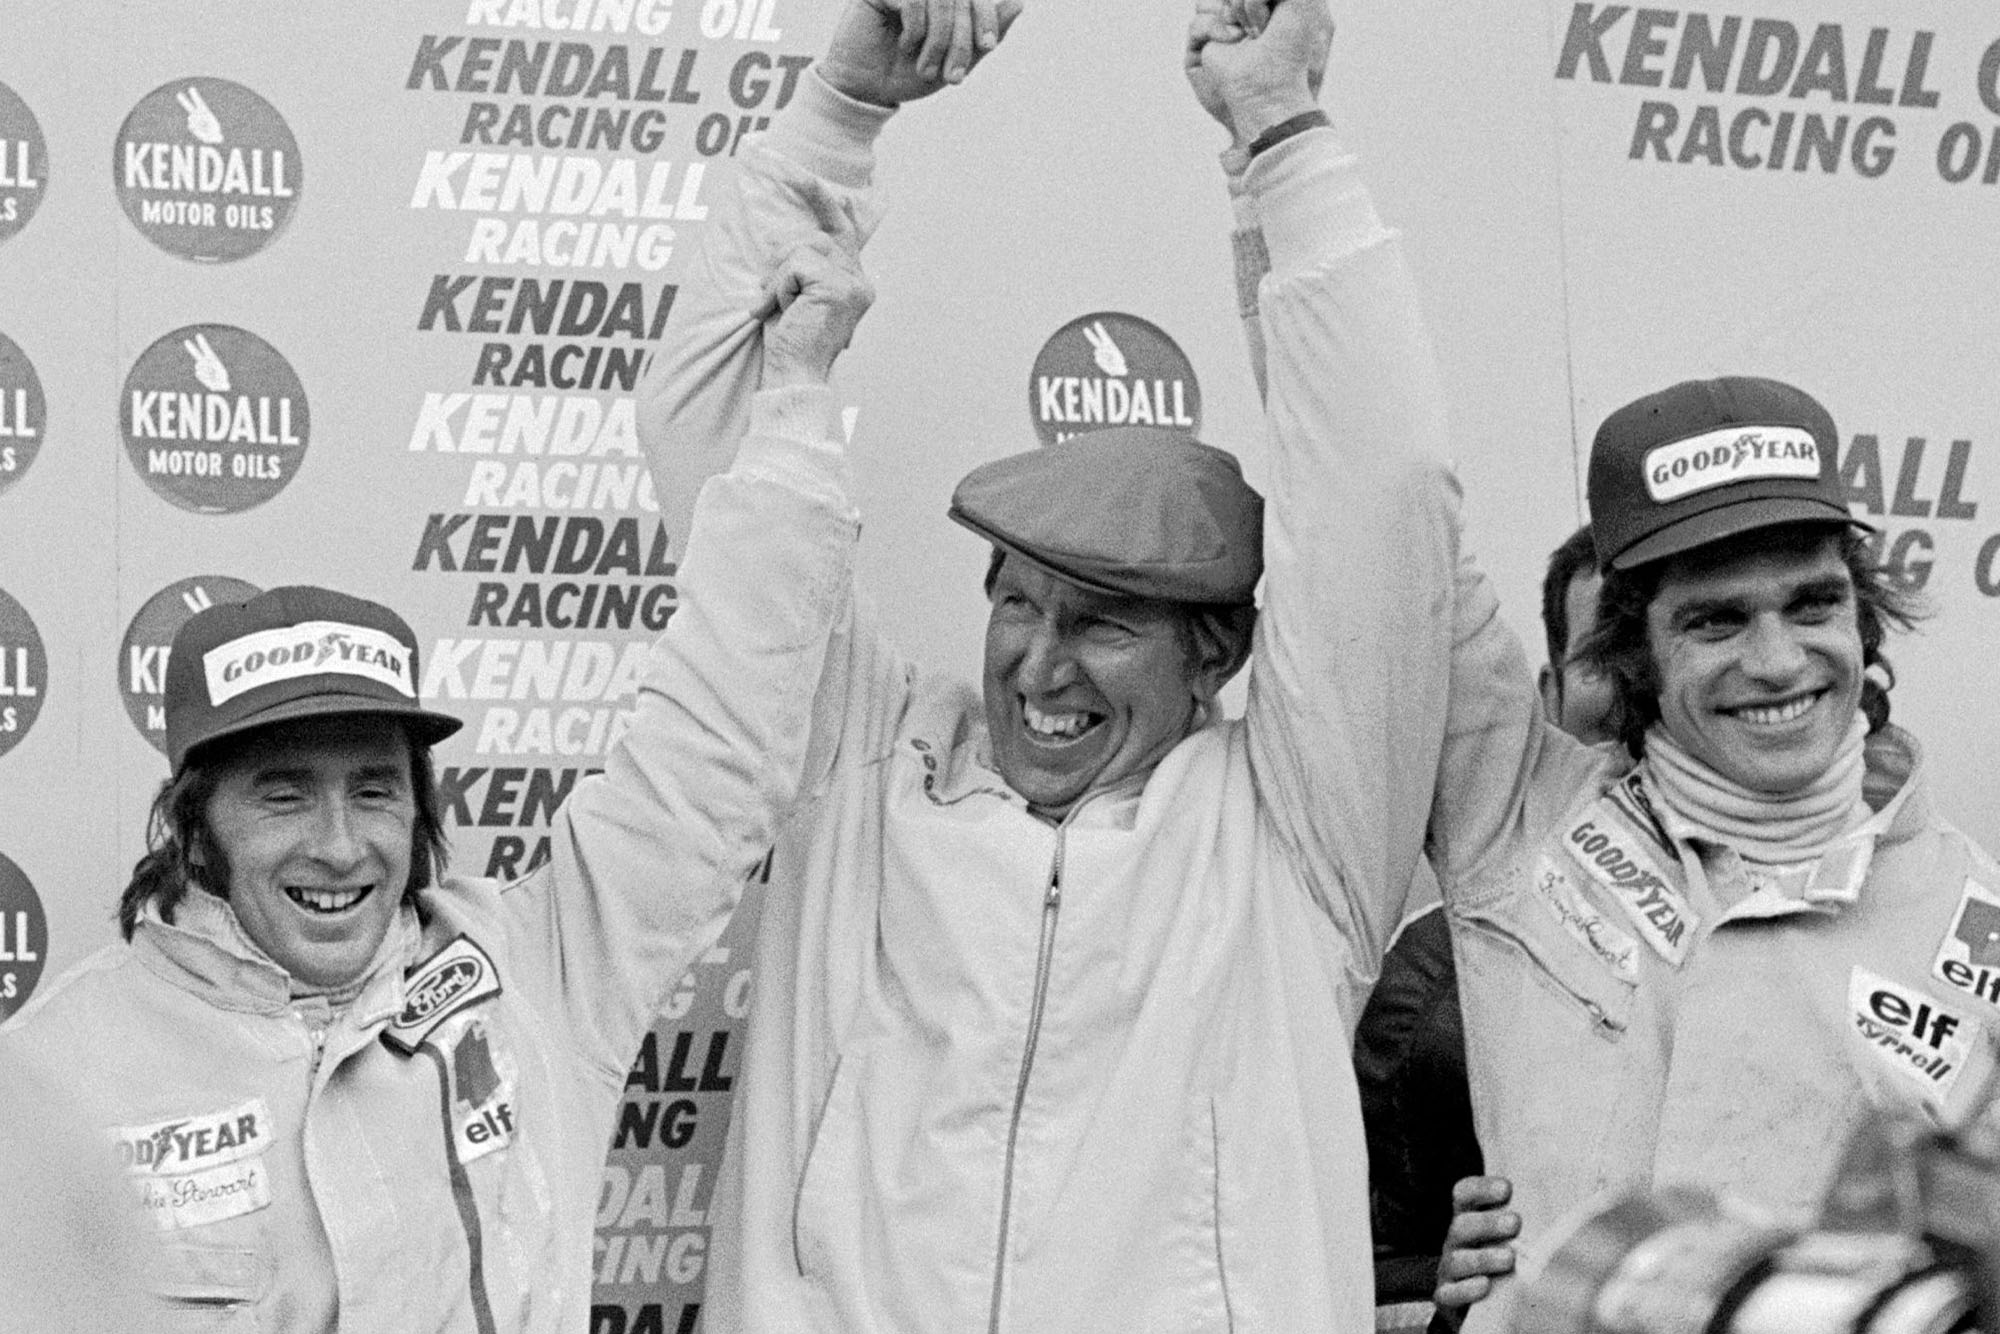 Jackie Stewart (left), Ken Tyrrell (centre) and Francois Cevert (right) celebrate their victory at the 1972 United States Grand Prix, Watkins Glen.